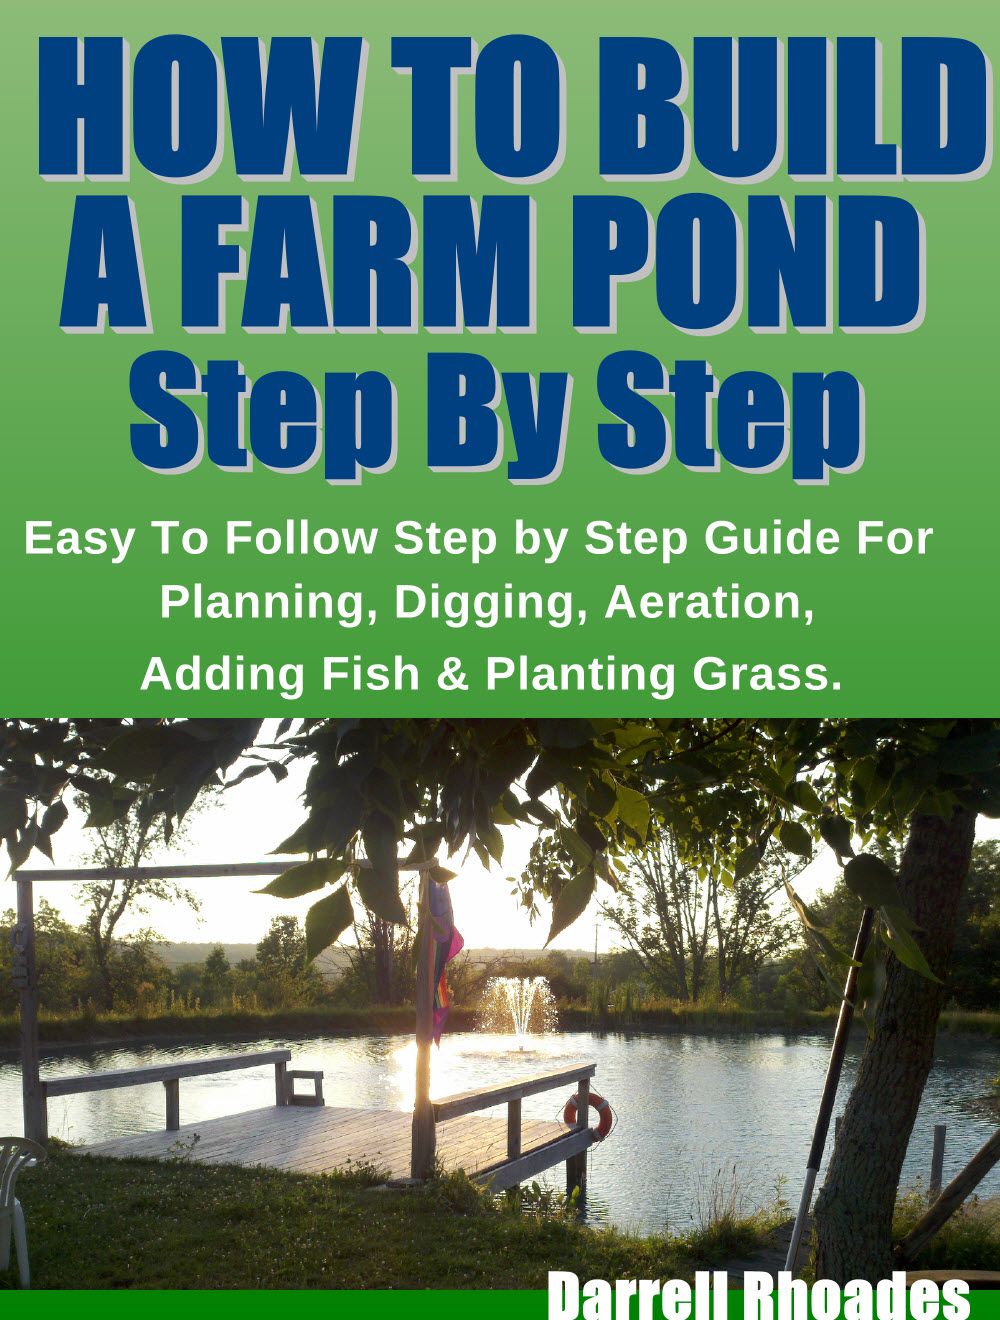 How To Build Pond